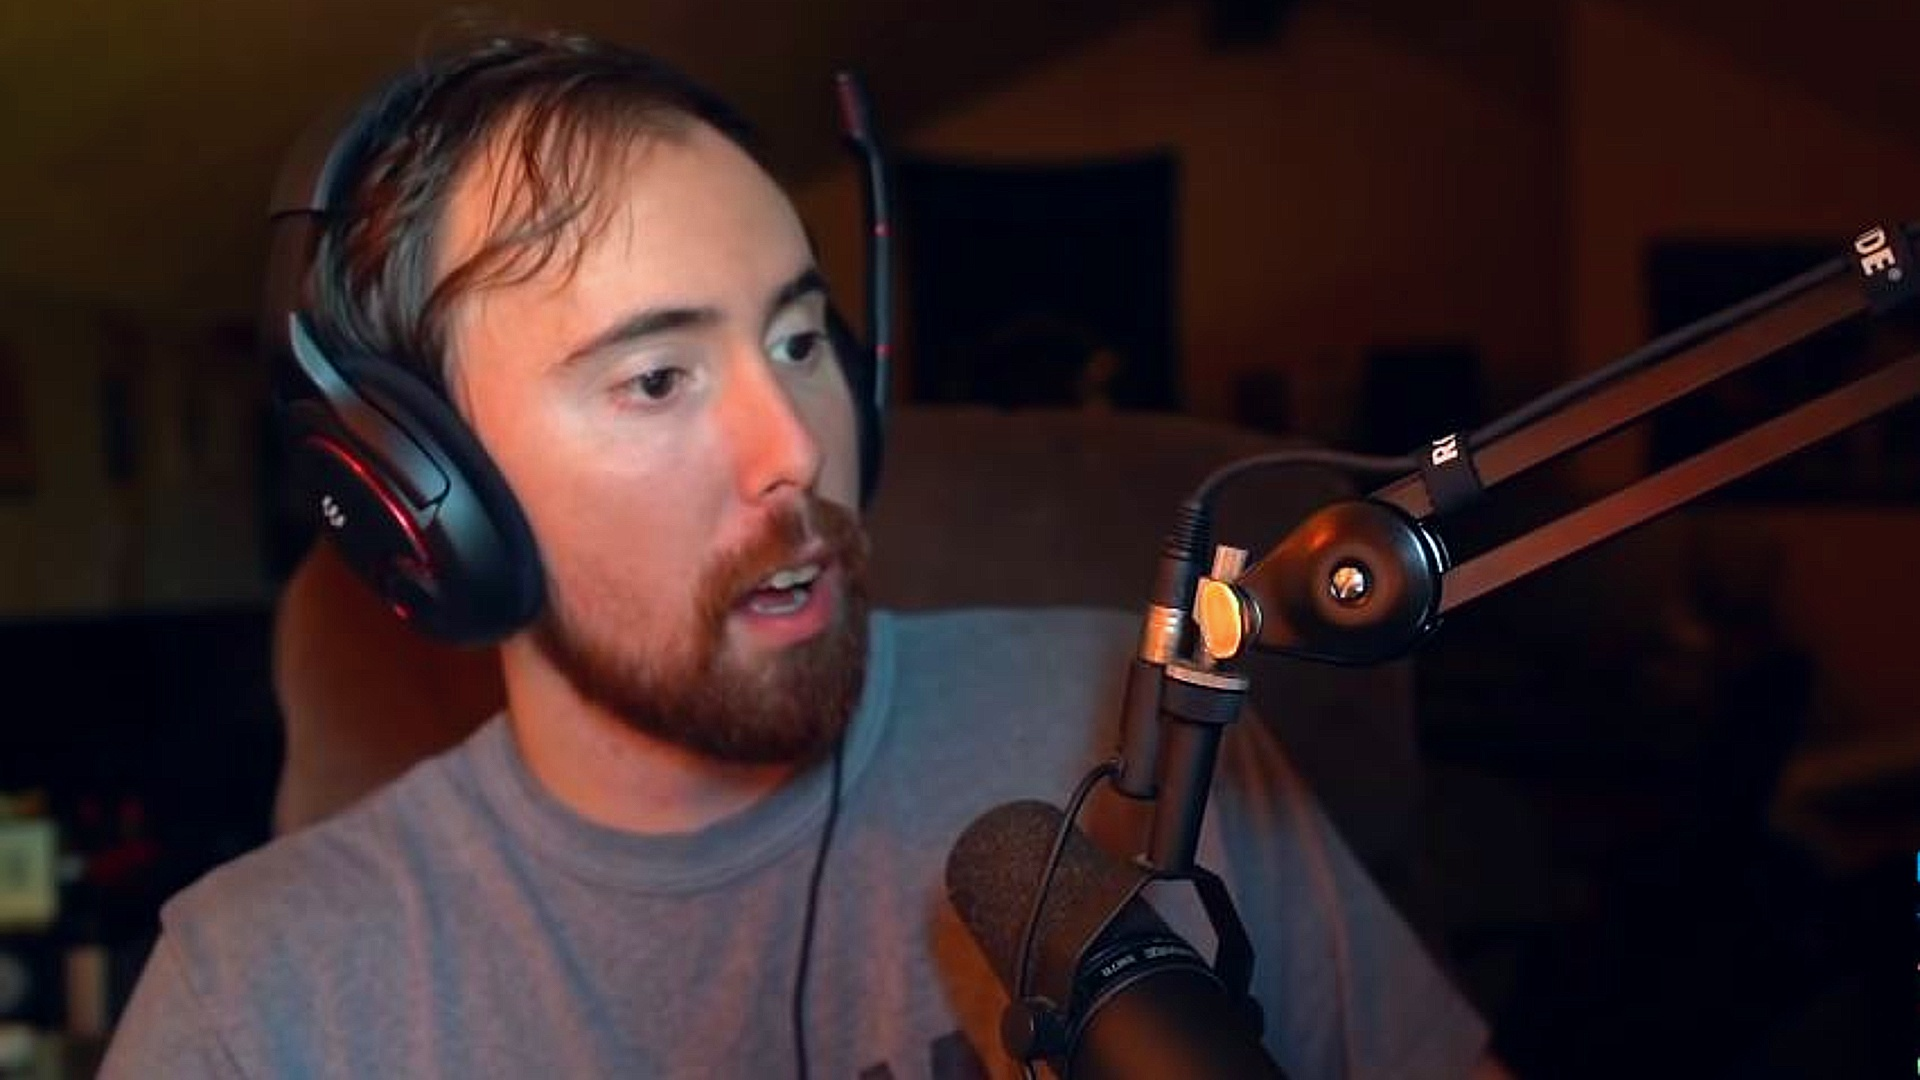 Asmongold Net Worth 2021, Early Life, Career, Girlfriend, and Awards